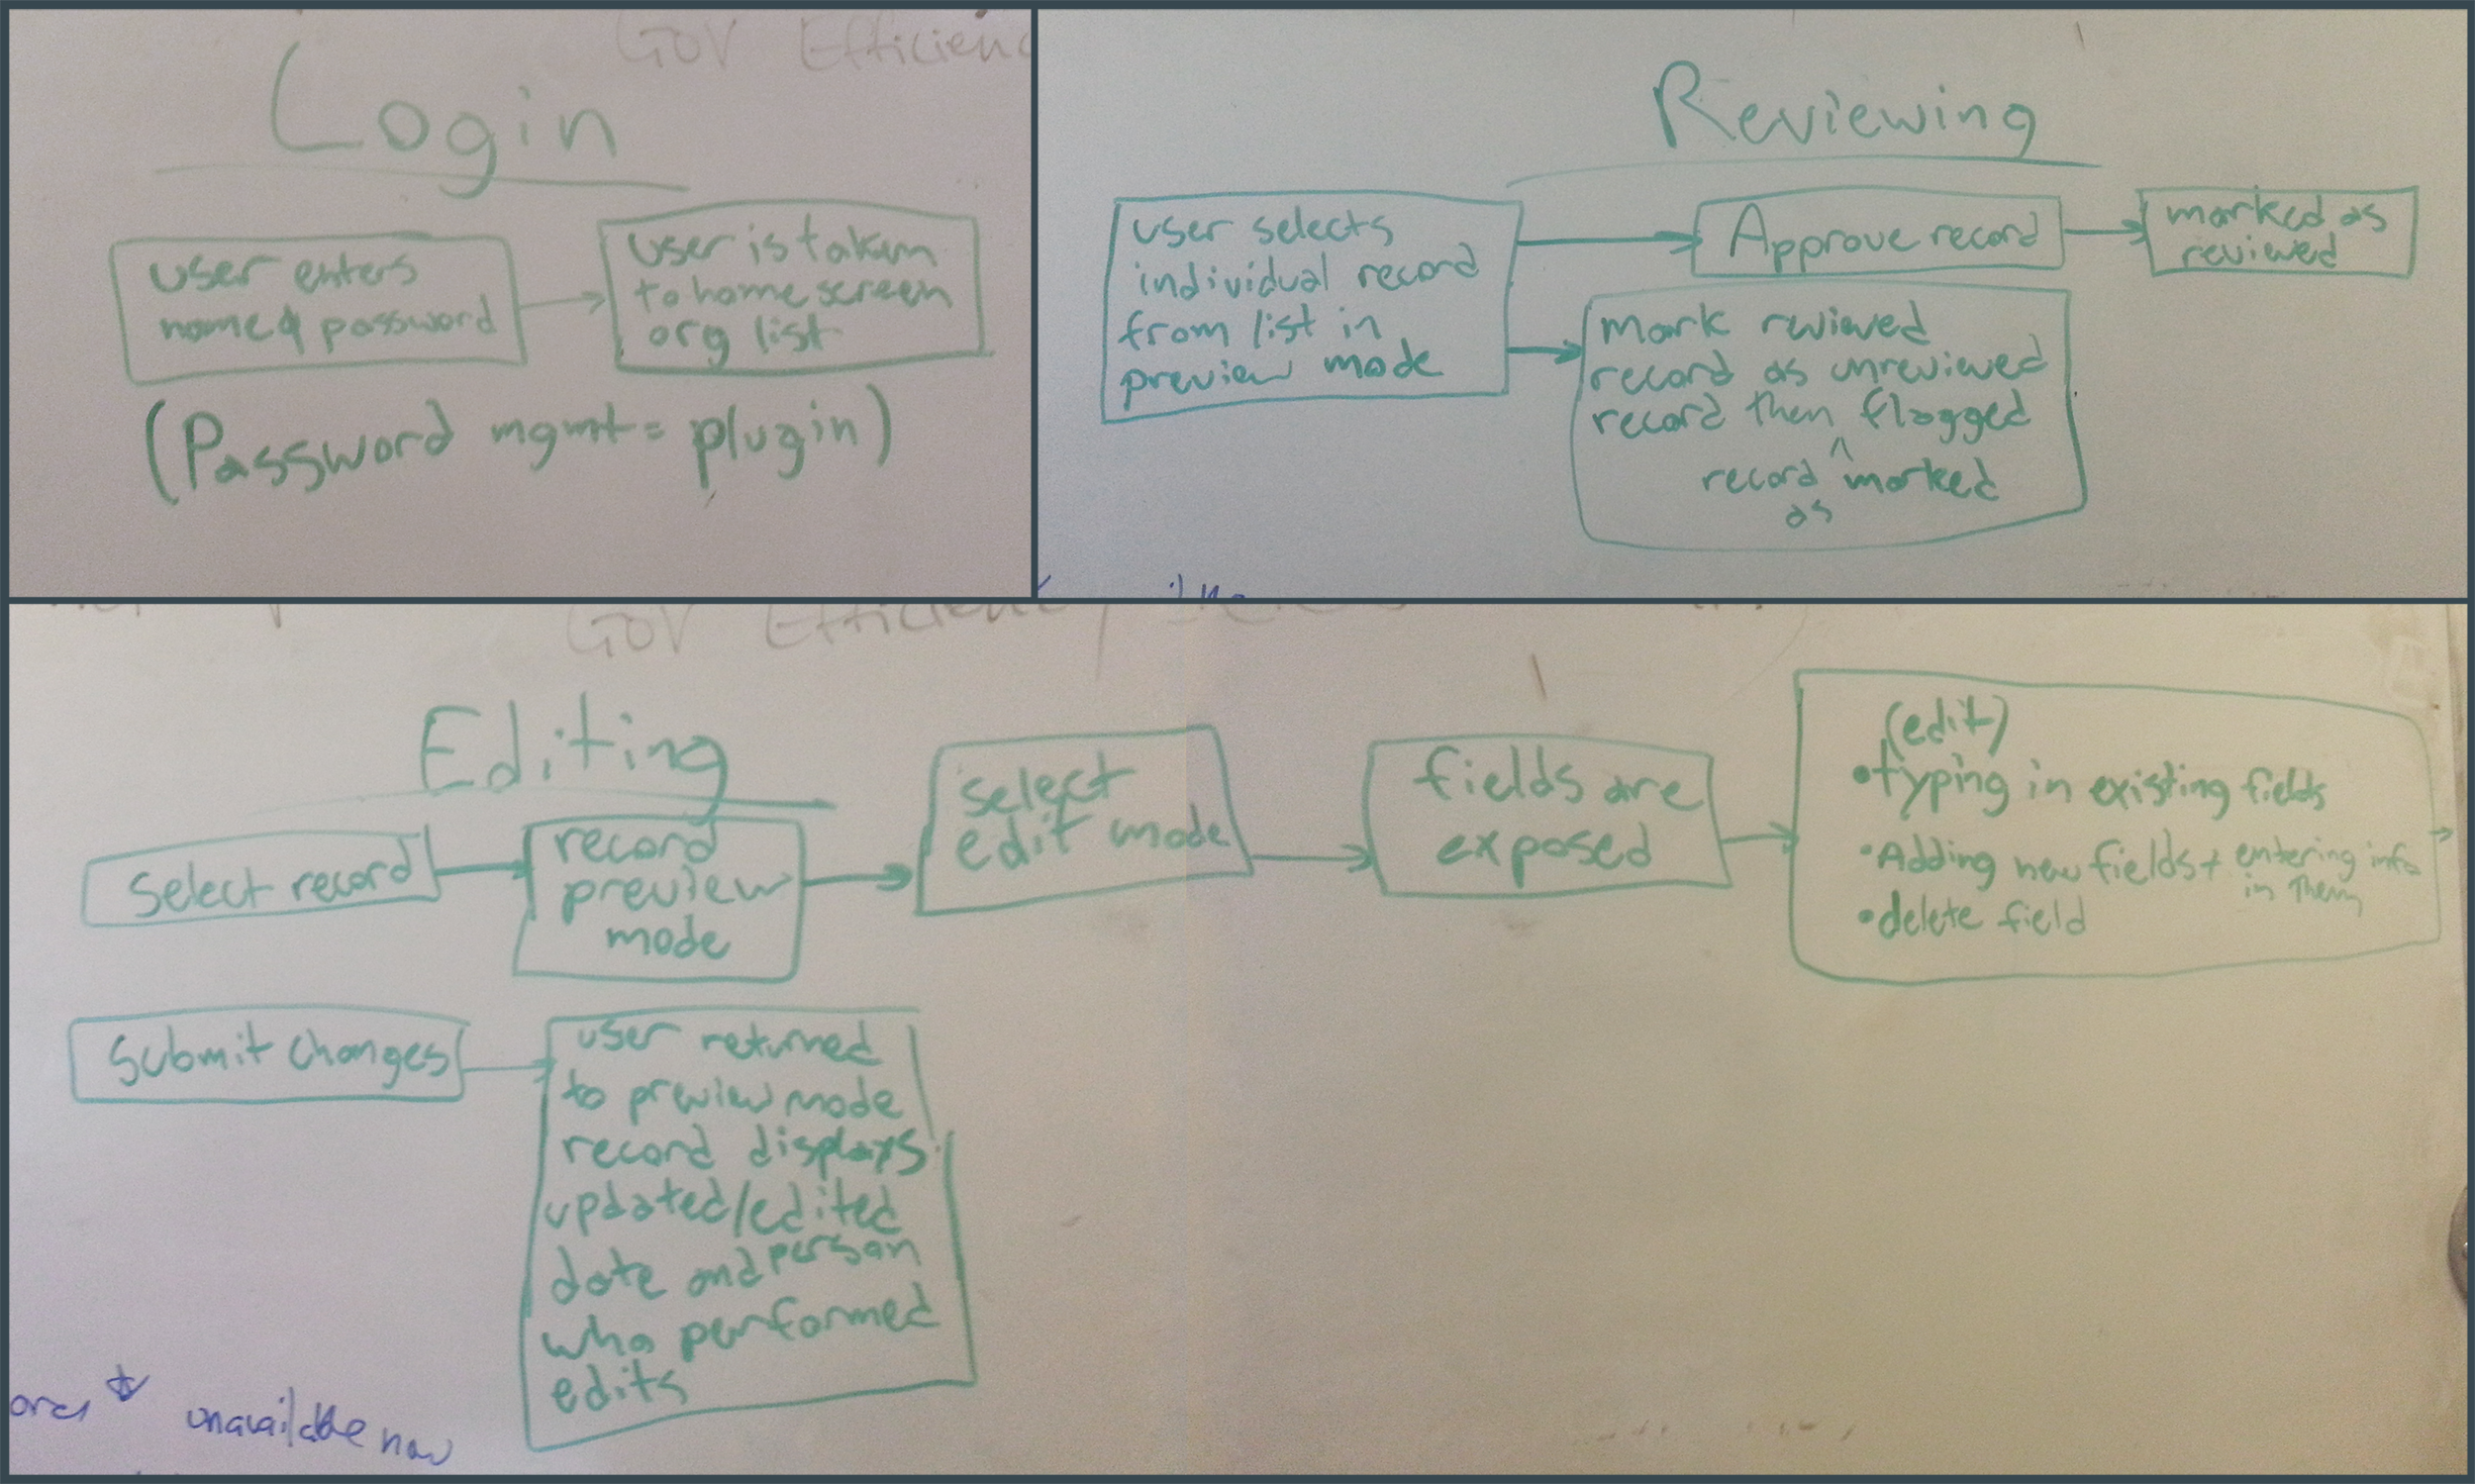 Collaboratively working out the three main flows necessary for MVP.